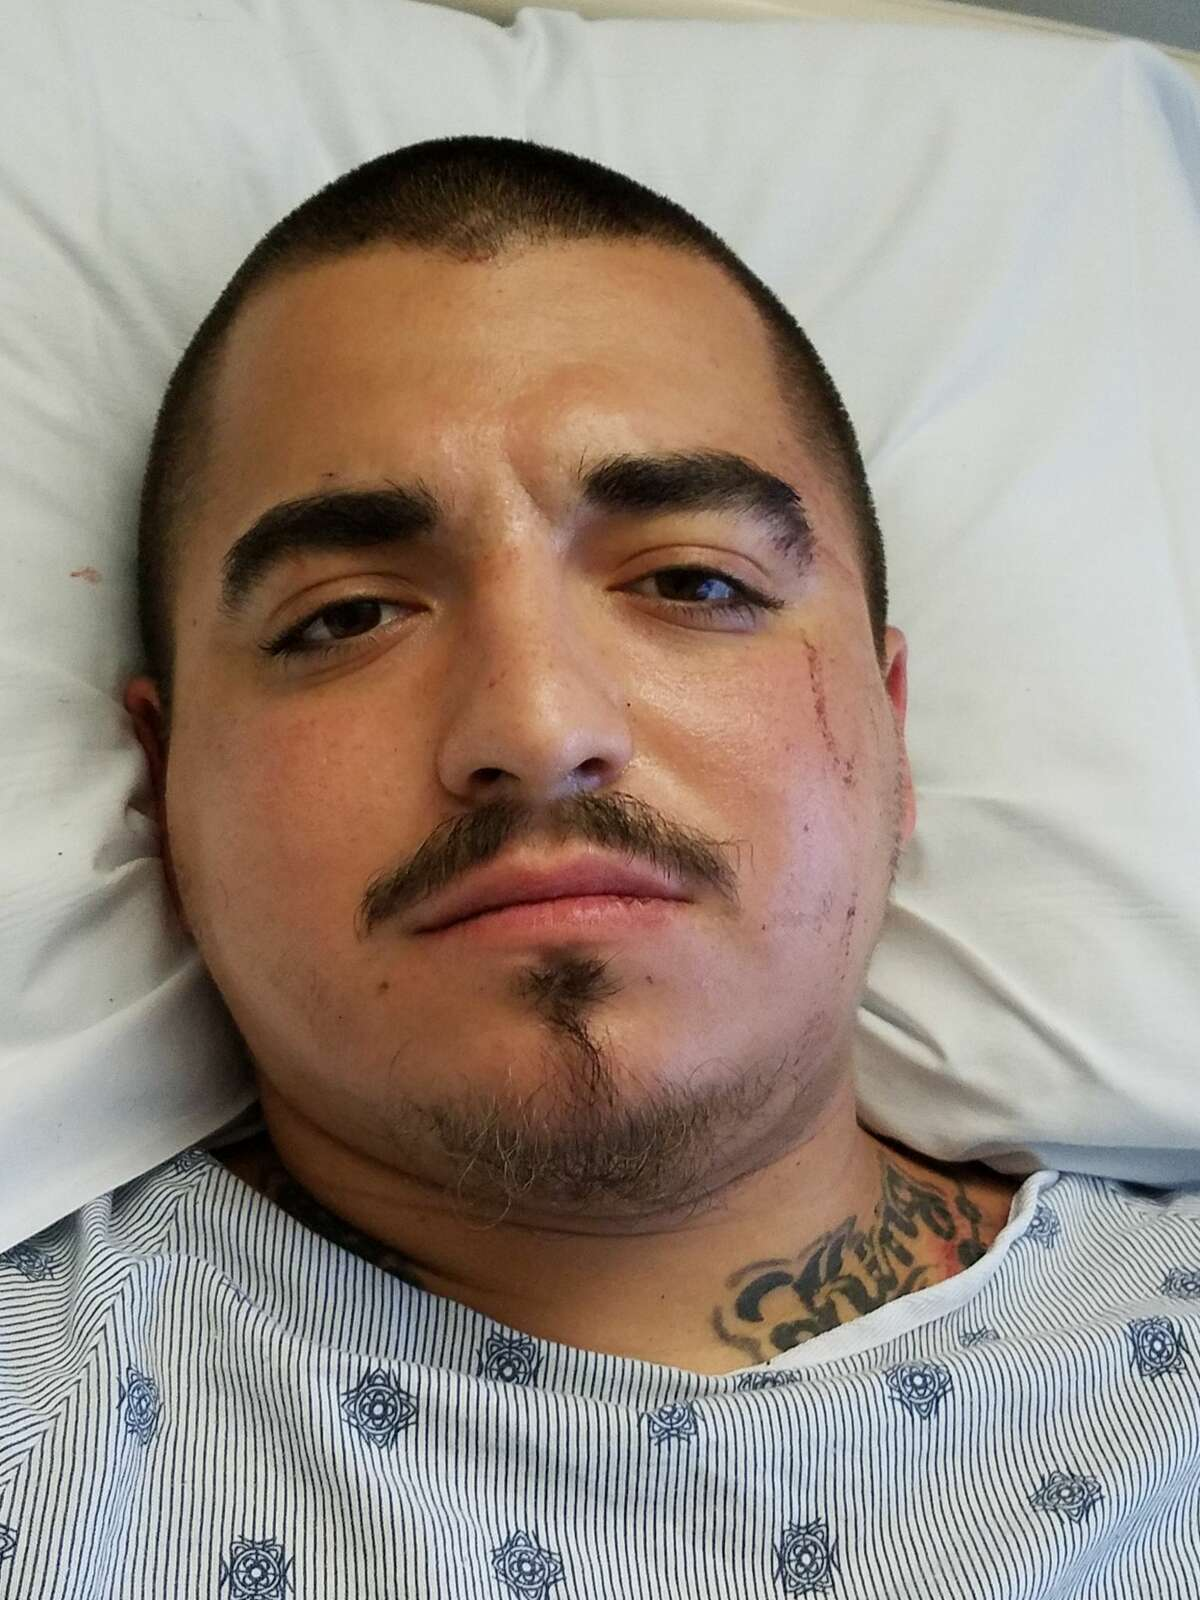 Jose Luis Garza Jr., 25, faces a charge of murder and remains in the Bexar County Jail on a $100,000 bond.